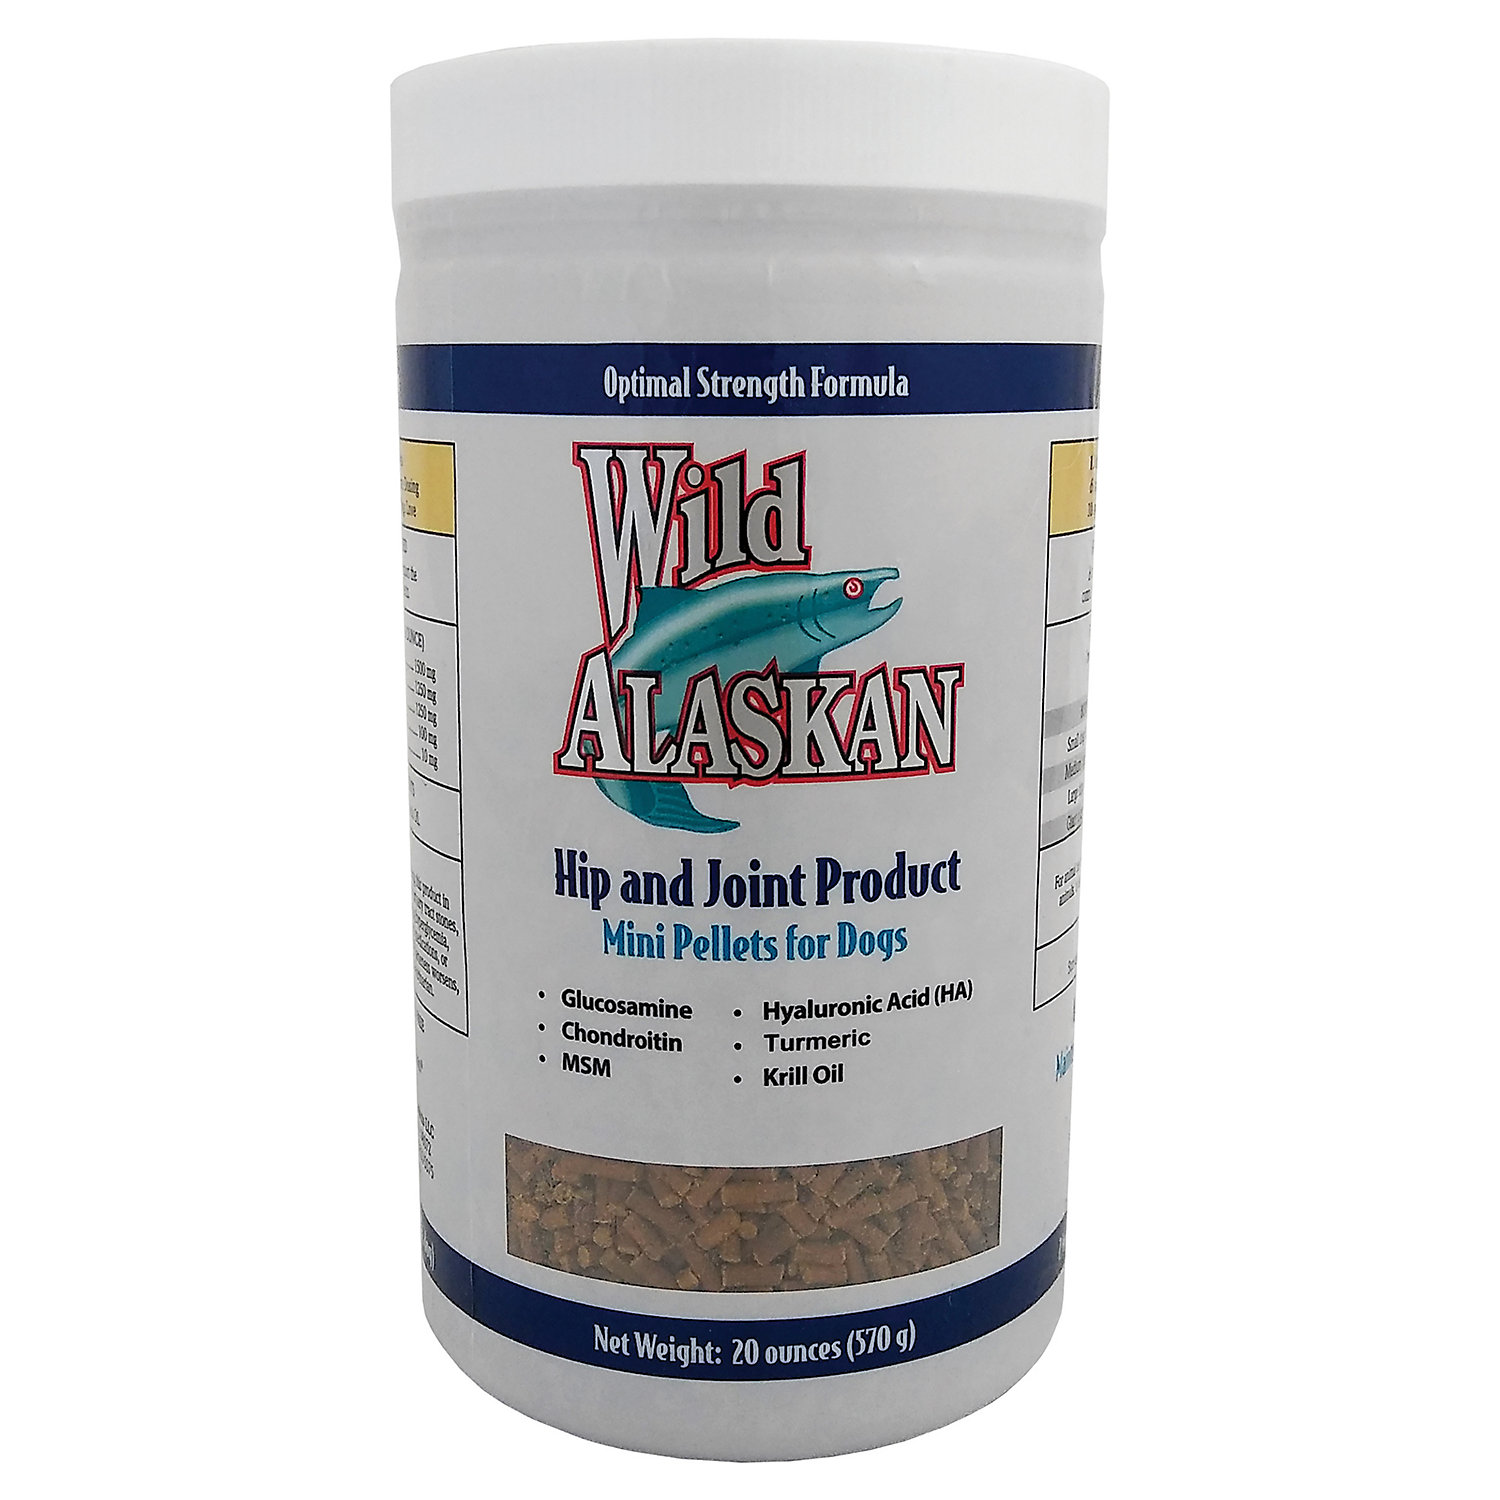 Wild Alaskan Hip And Joint Product For Dogs